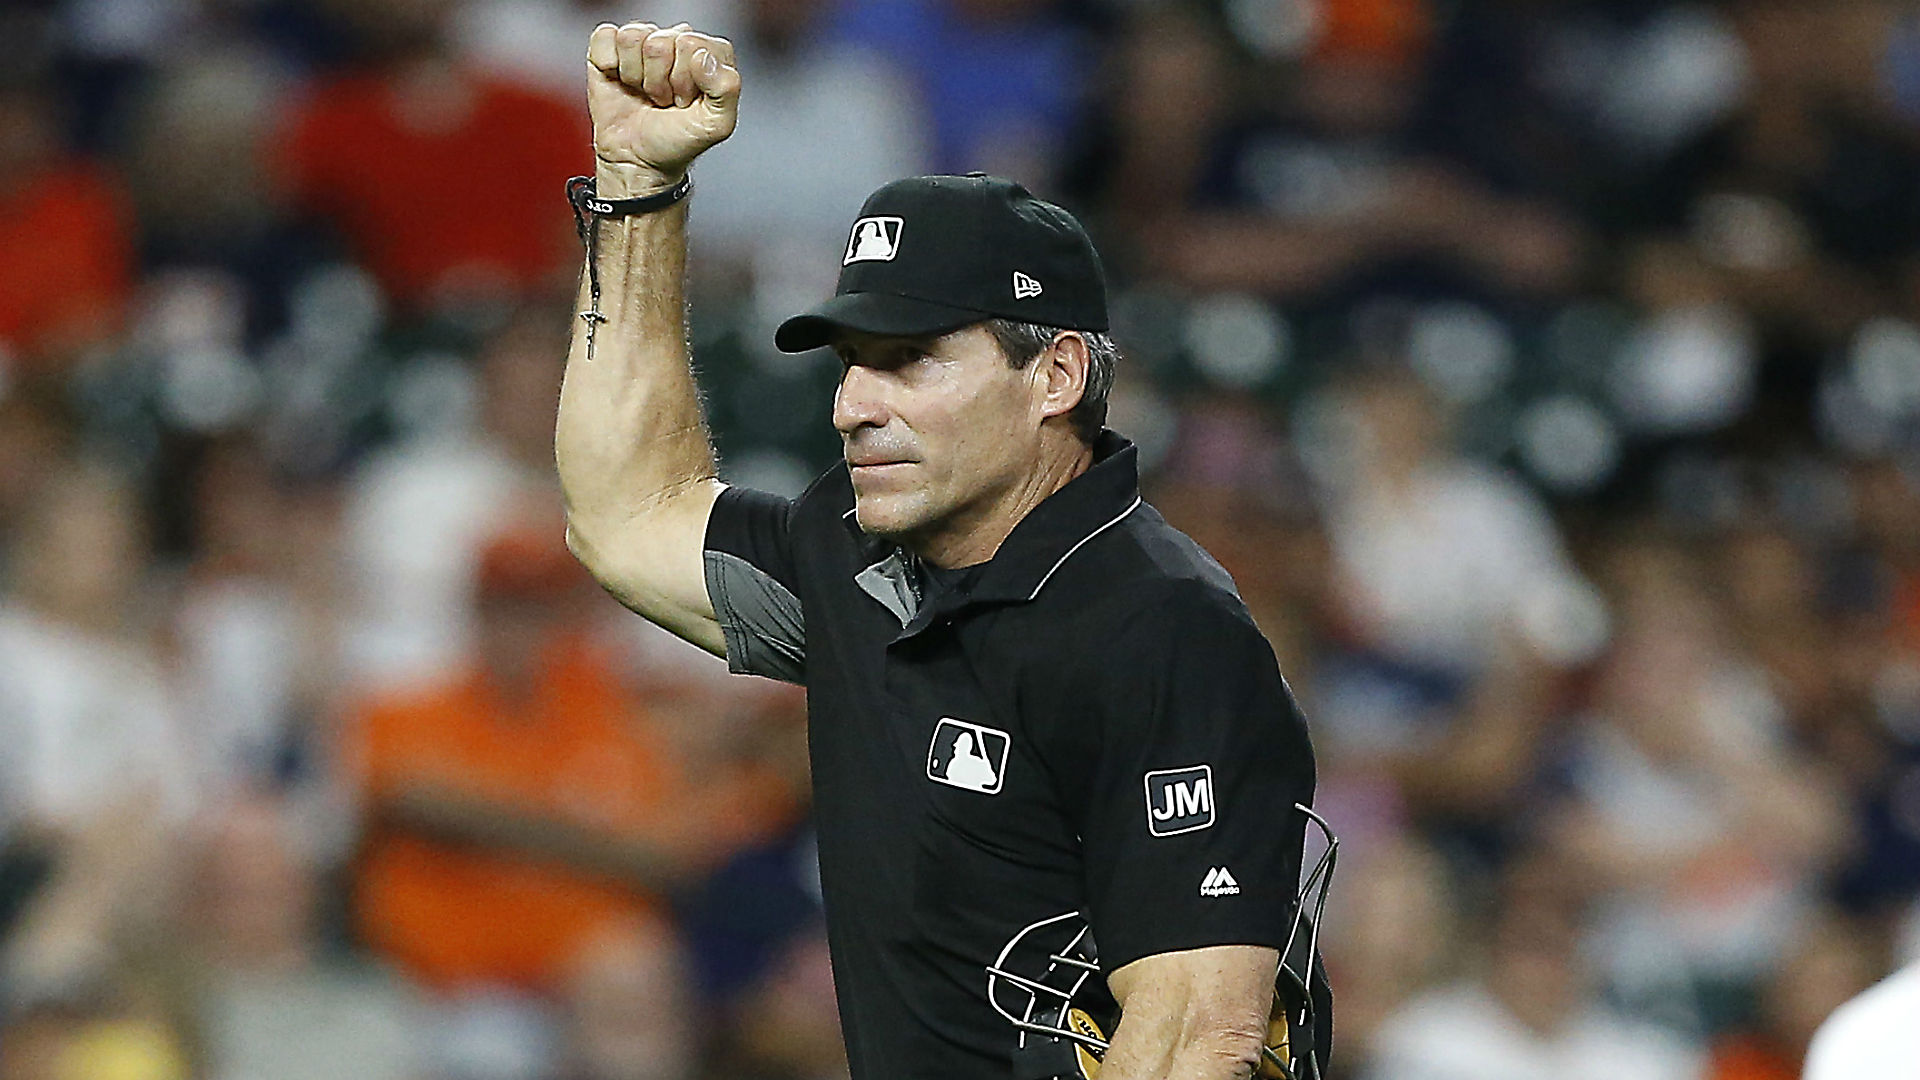 Yankees curse out Angel Hernandez after umpire blows key call 1